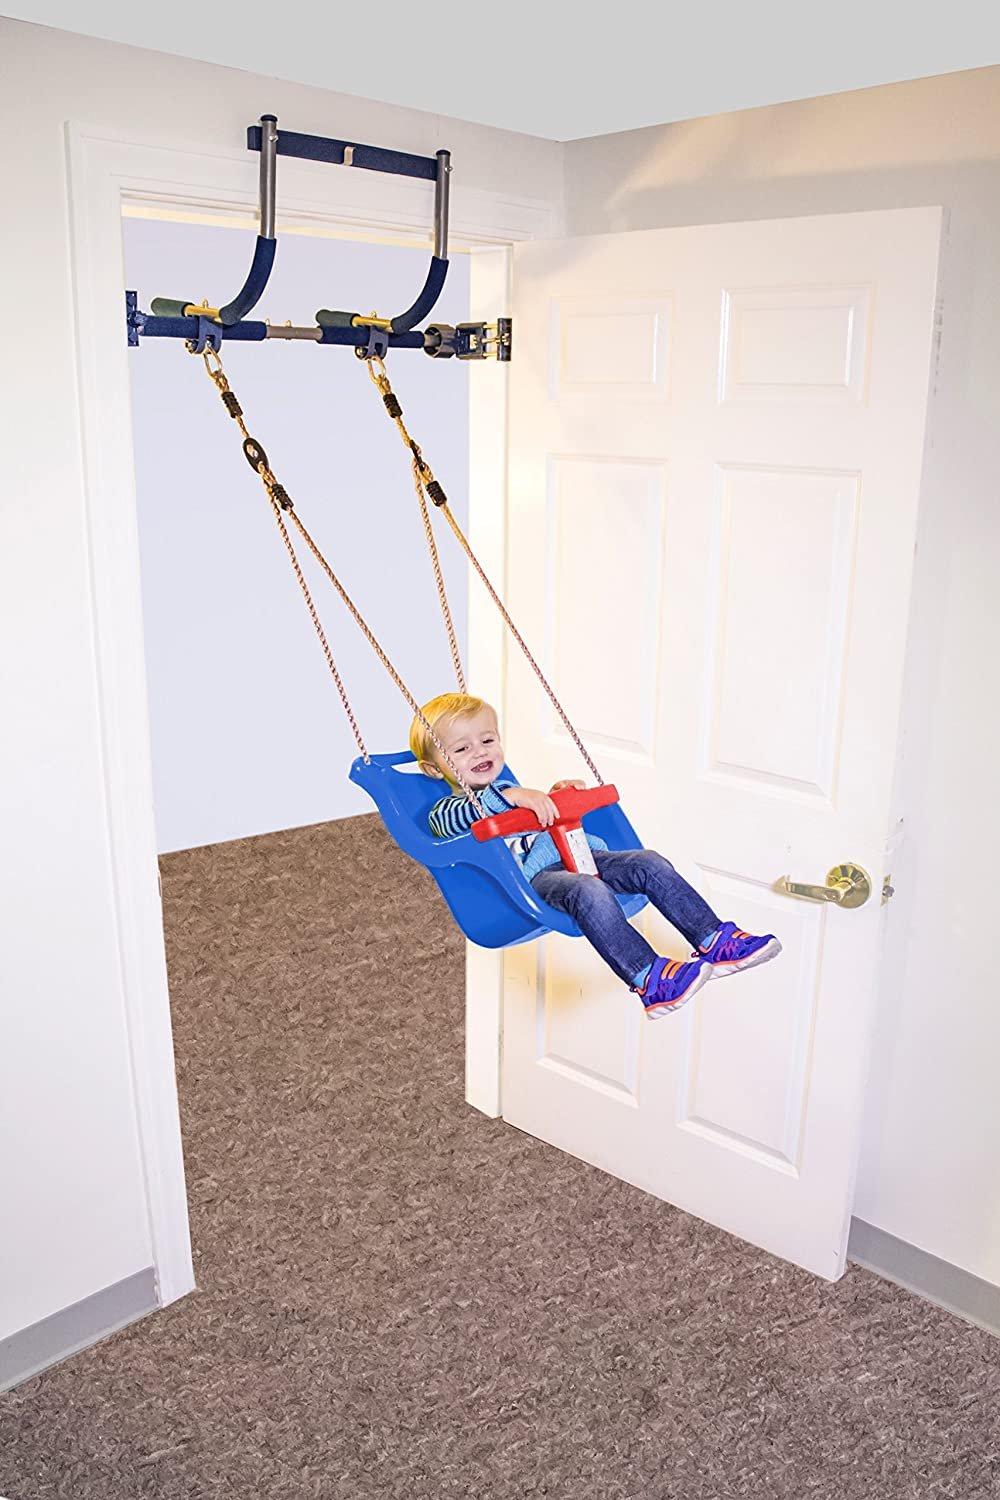 Gym1 Deluxe Toddler Swing Package